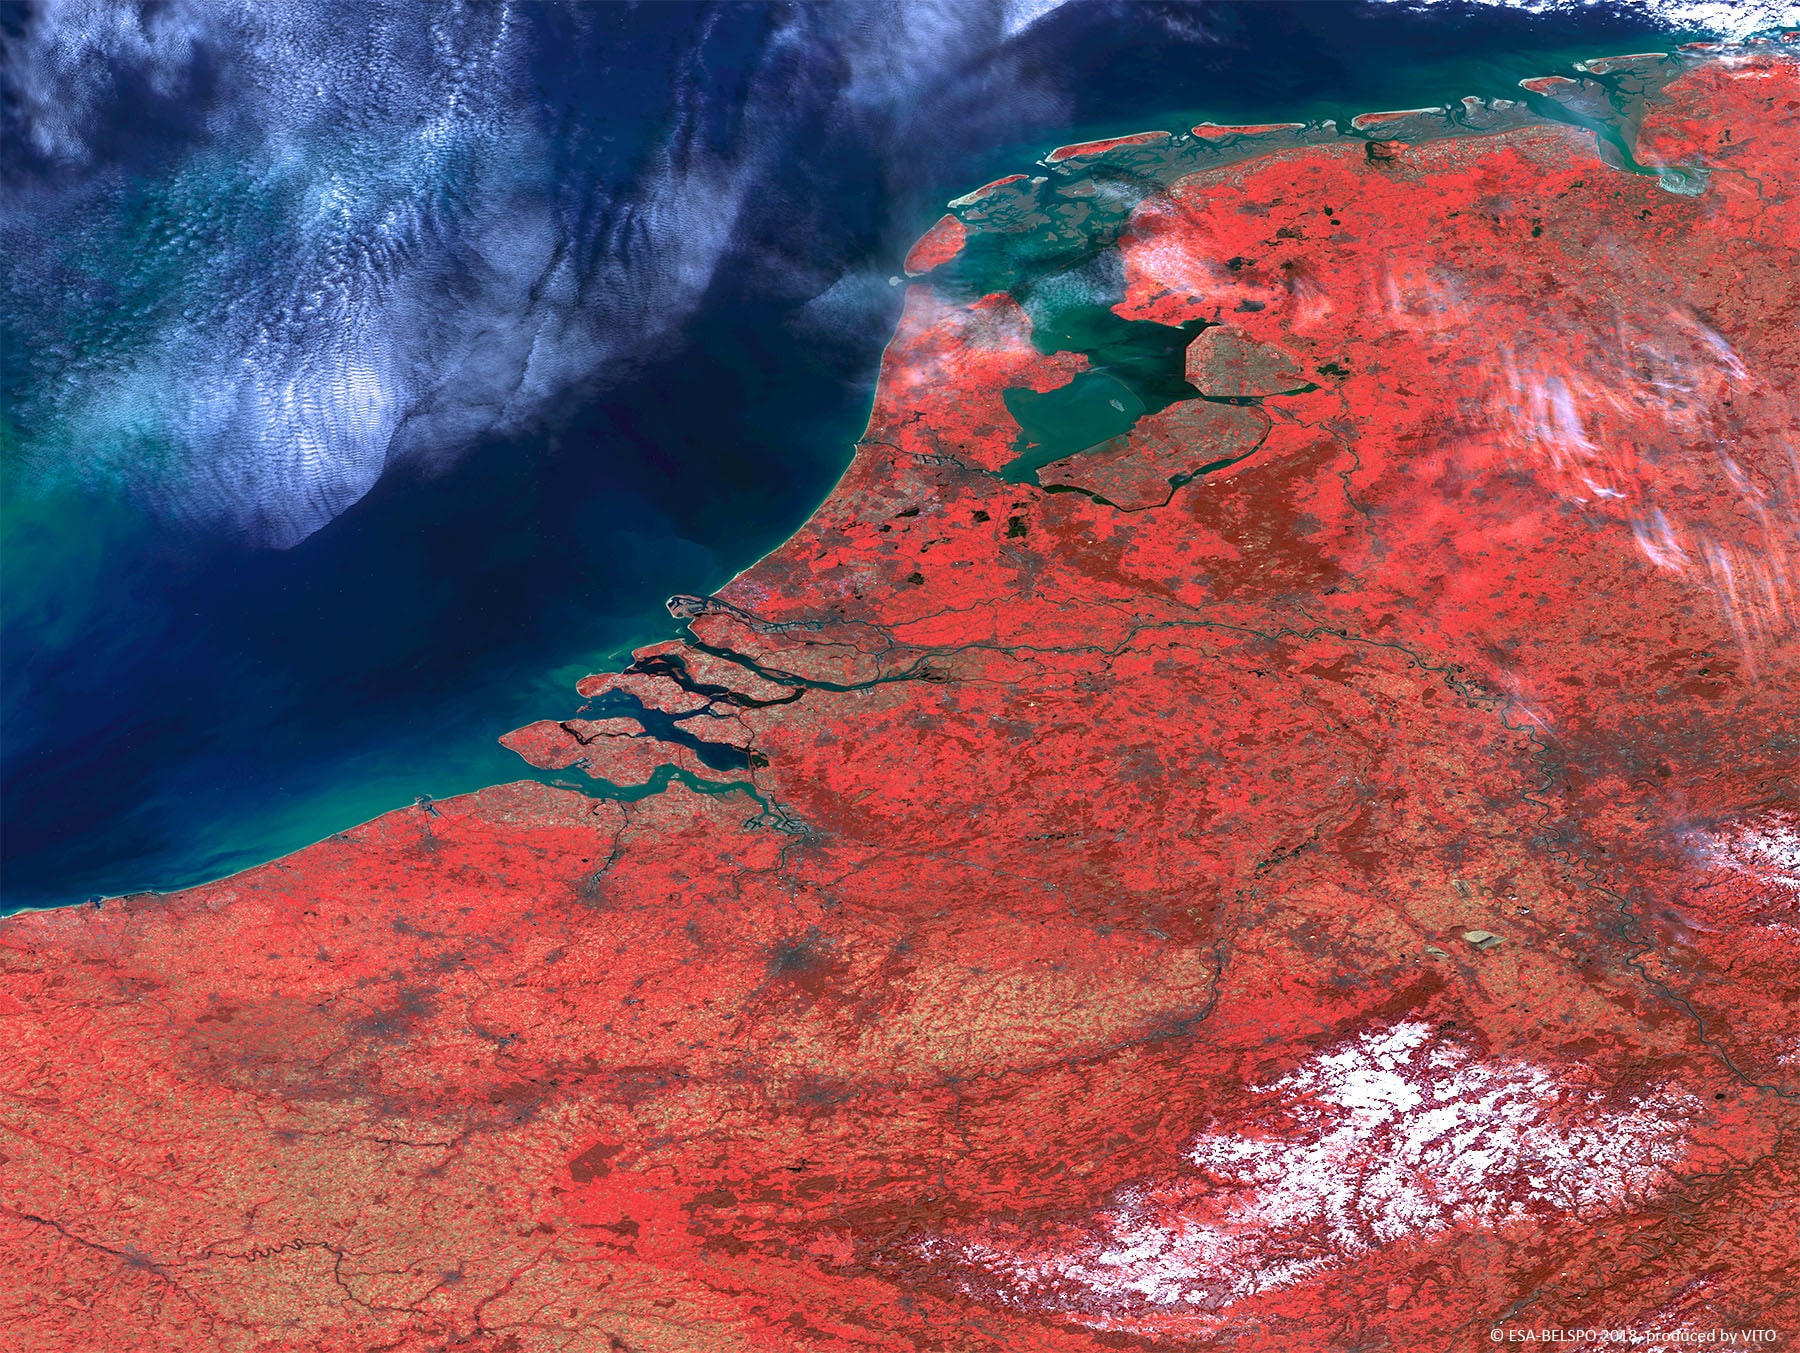 100 m image of the estuaries of the Scheldt and Rhine rivers along the coast of Belgium and The Netherlands